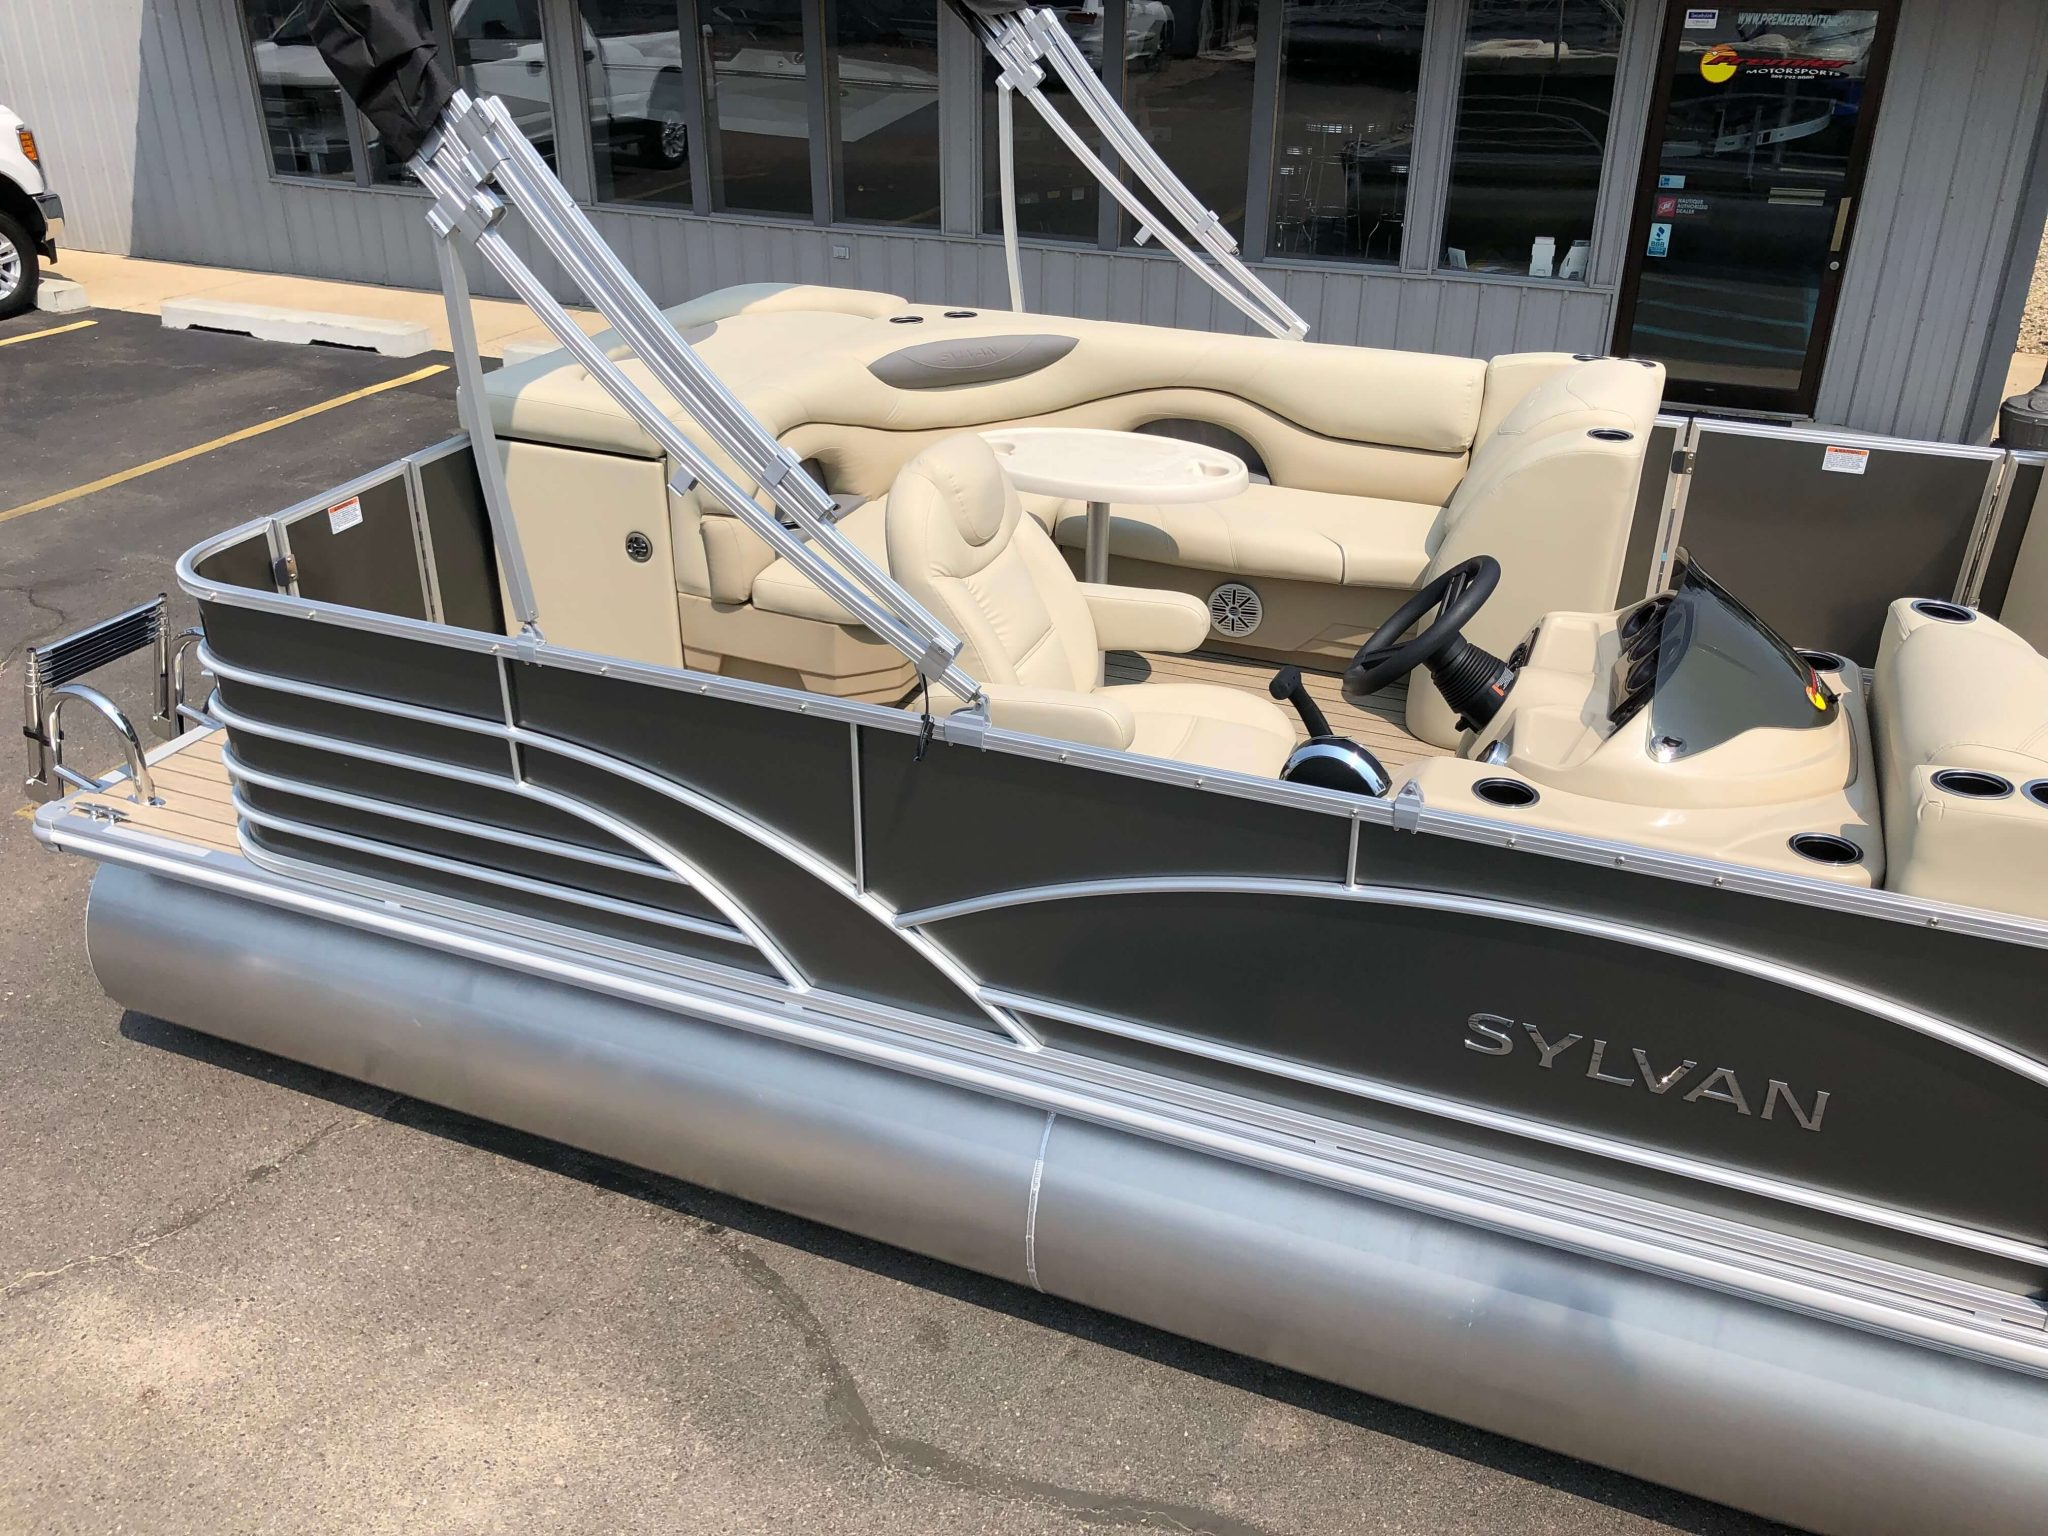 2019 Sylvan 8522 Cruise Carbon Pontoon Boat 3